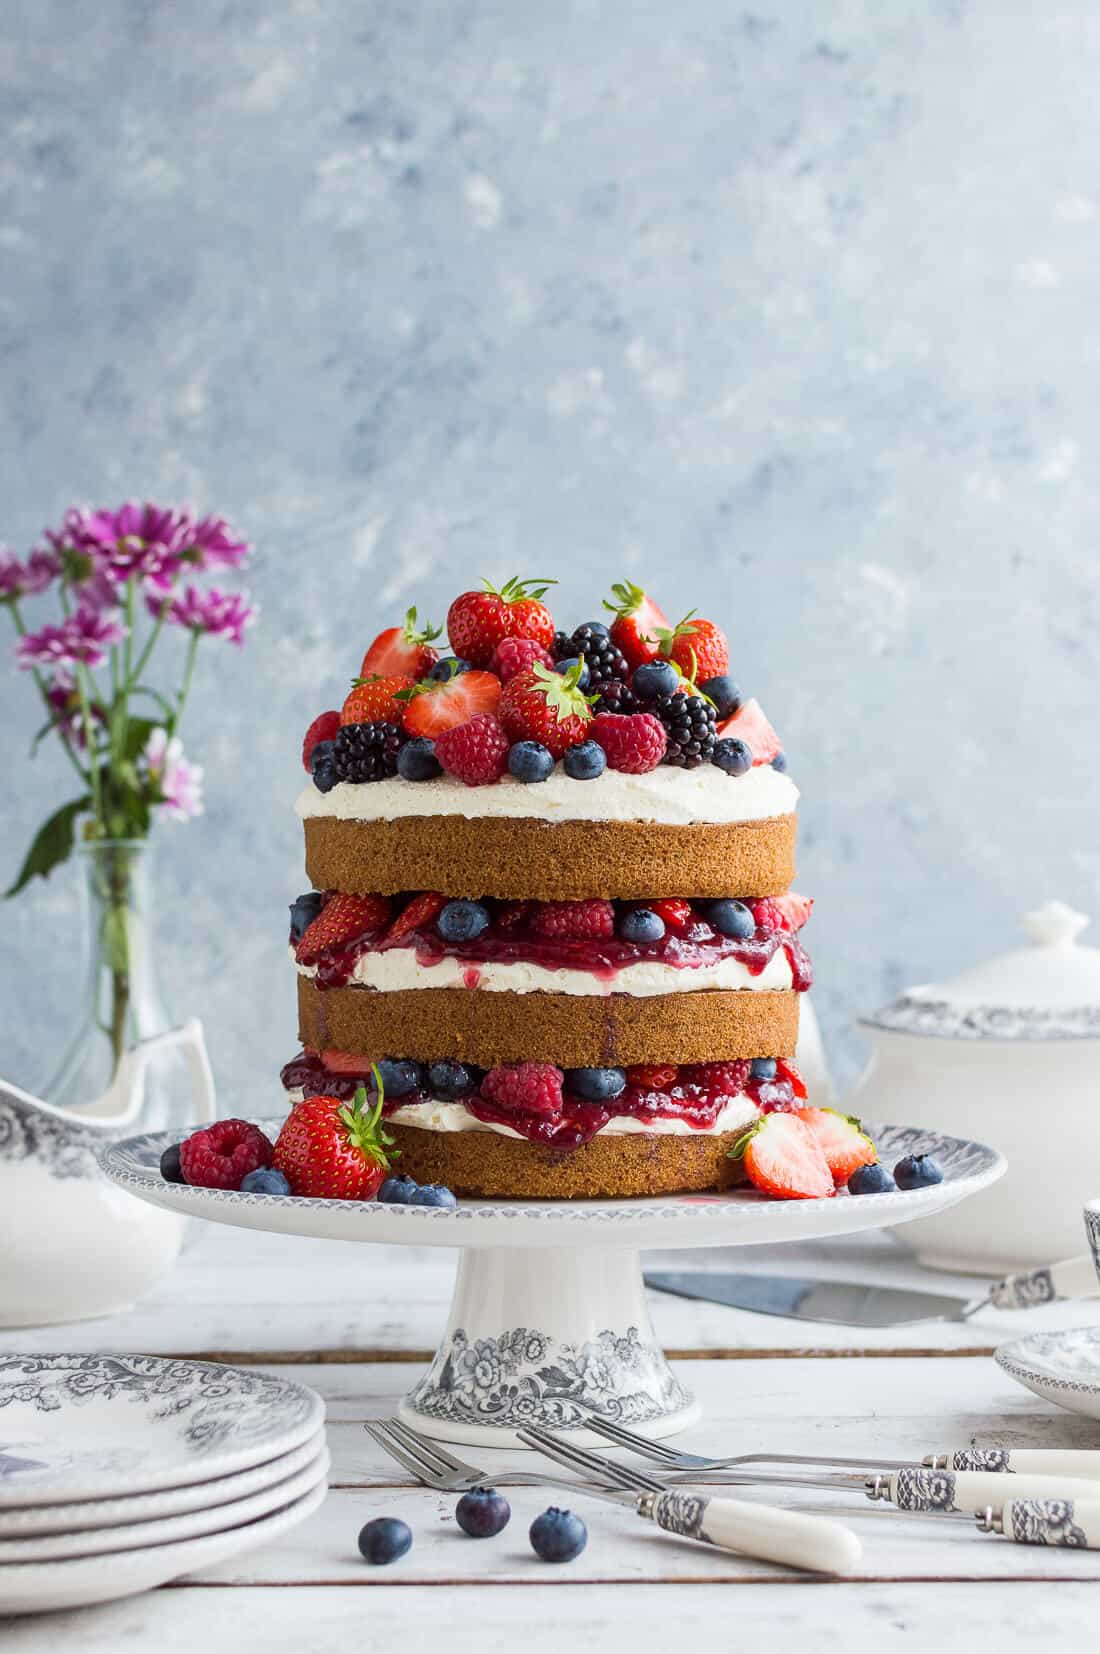 Vegan vanilla cake with berries and jam on a grey and white cake stand with crockery and flowers in the background.